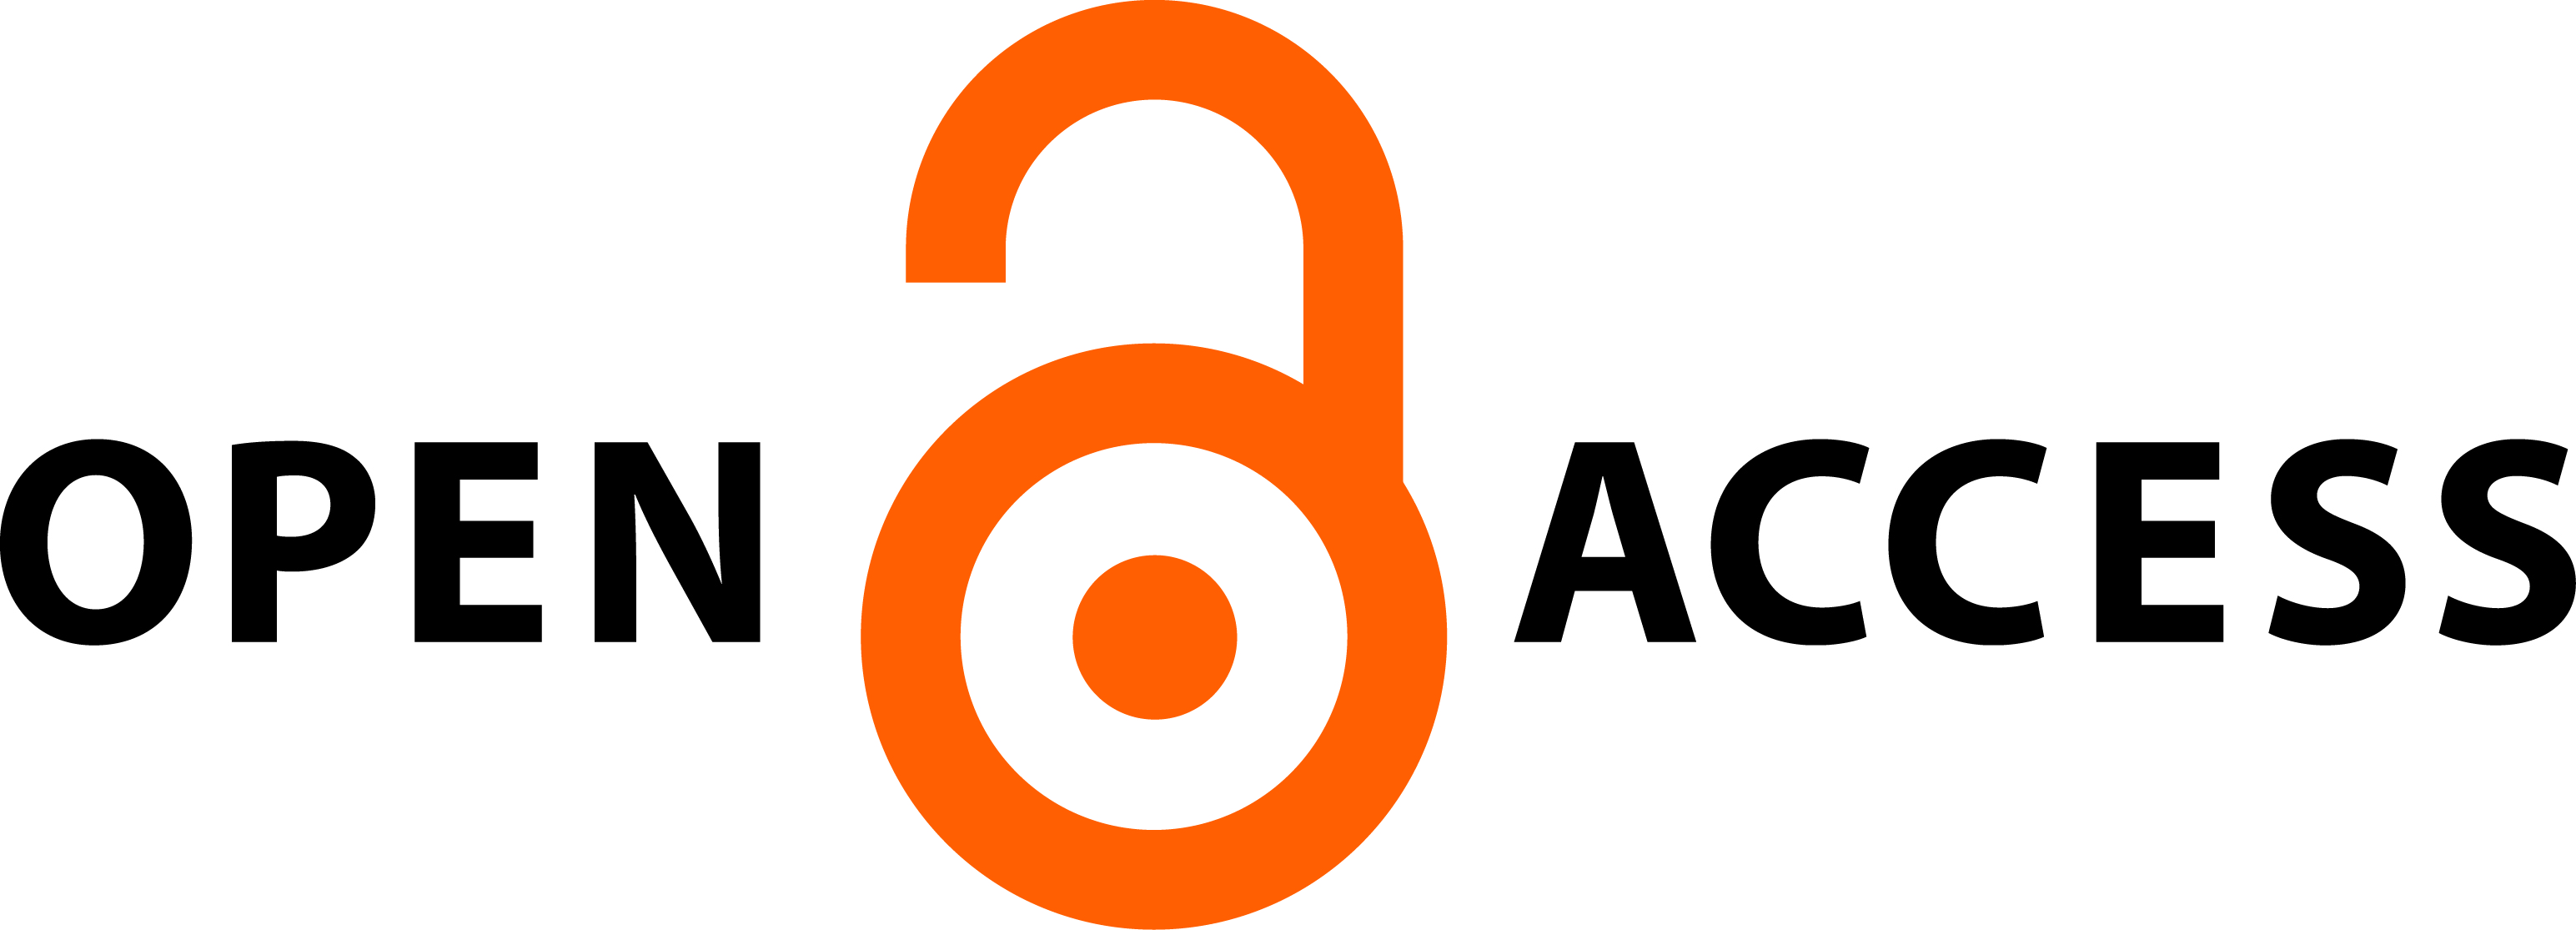 Open Access Banner with Lock graphic